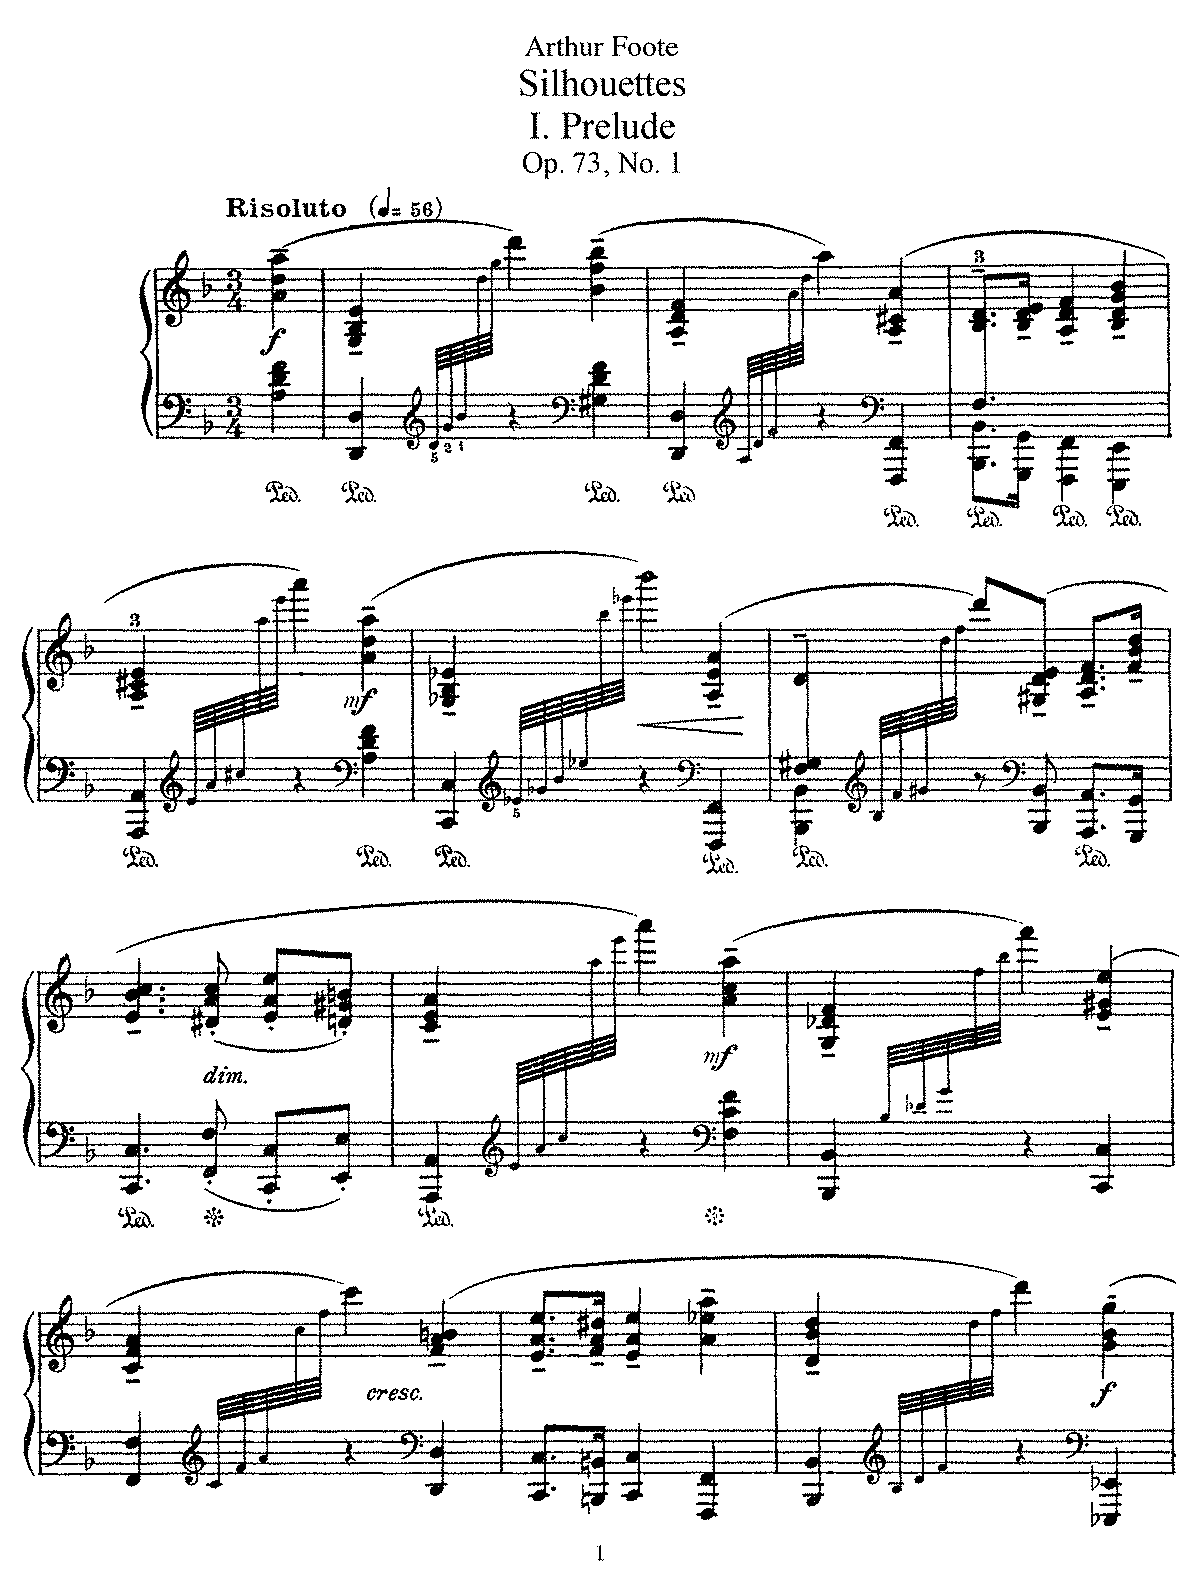 Foote - Op.73 - 5 Silhouettes.pdf